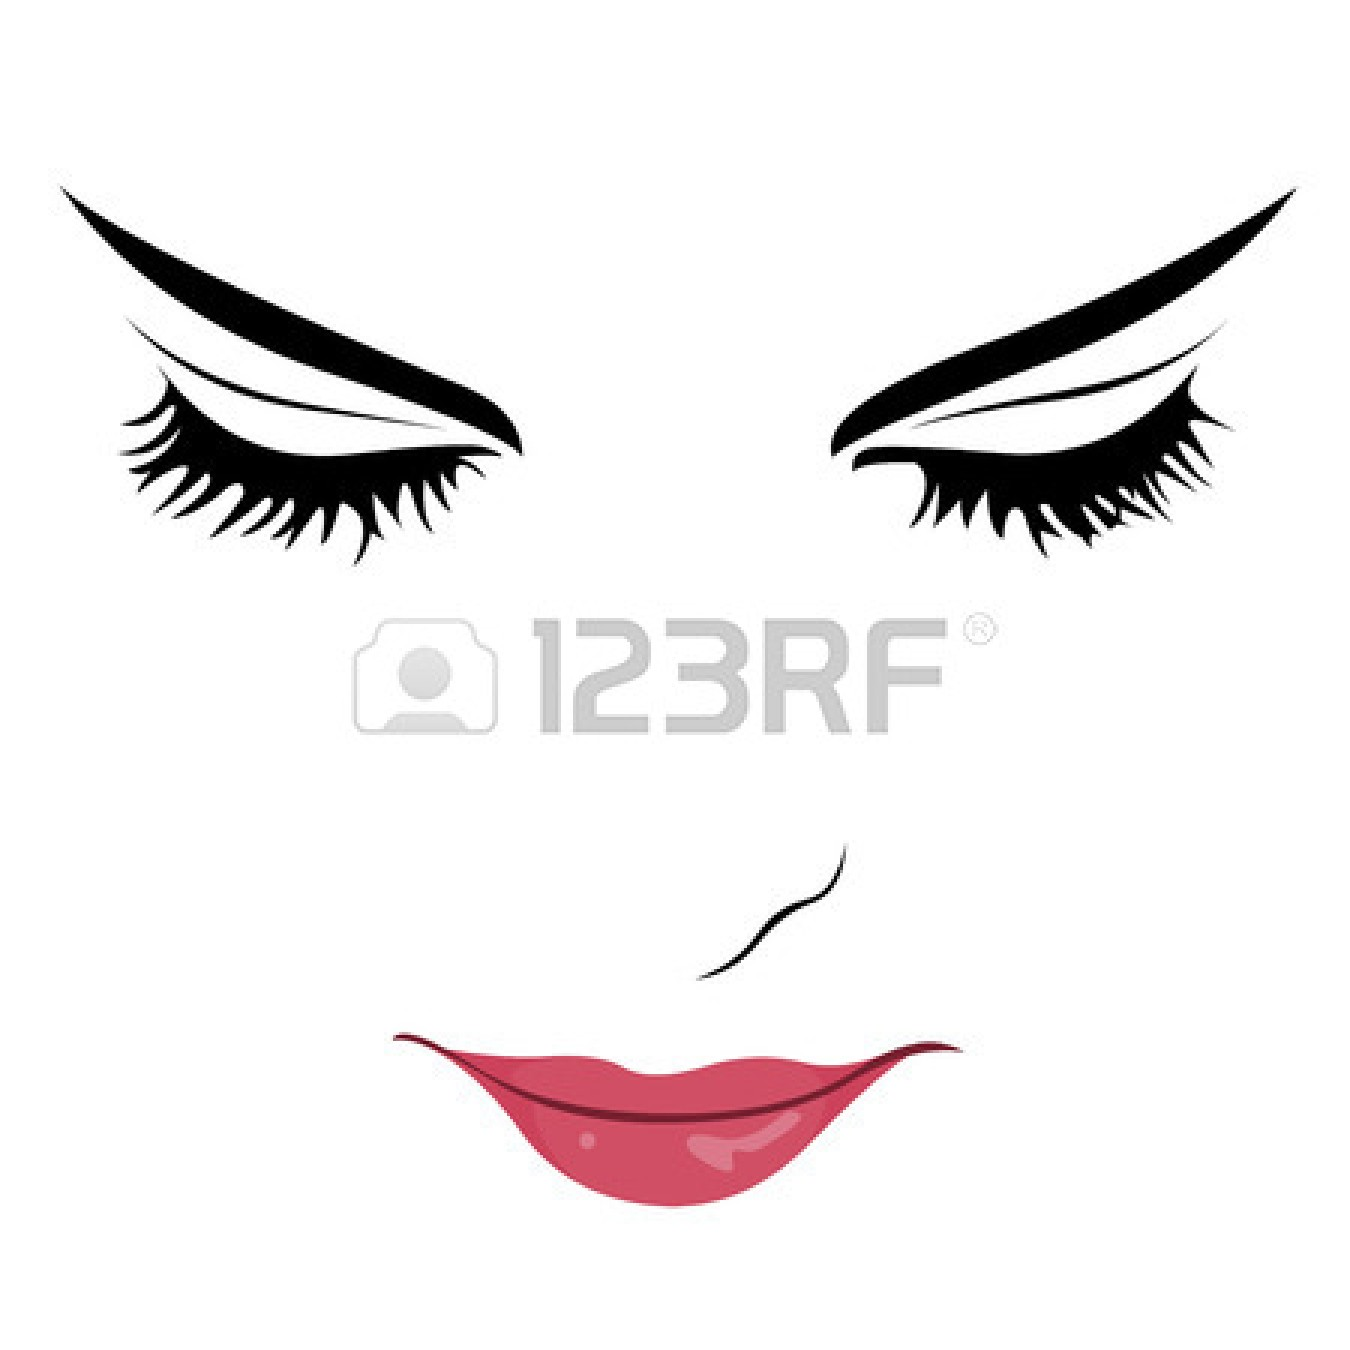 dissatisfaction%20clipart